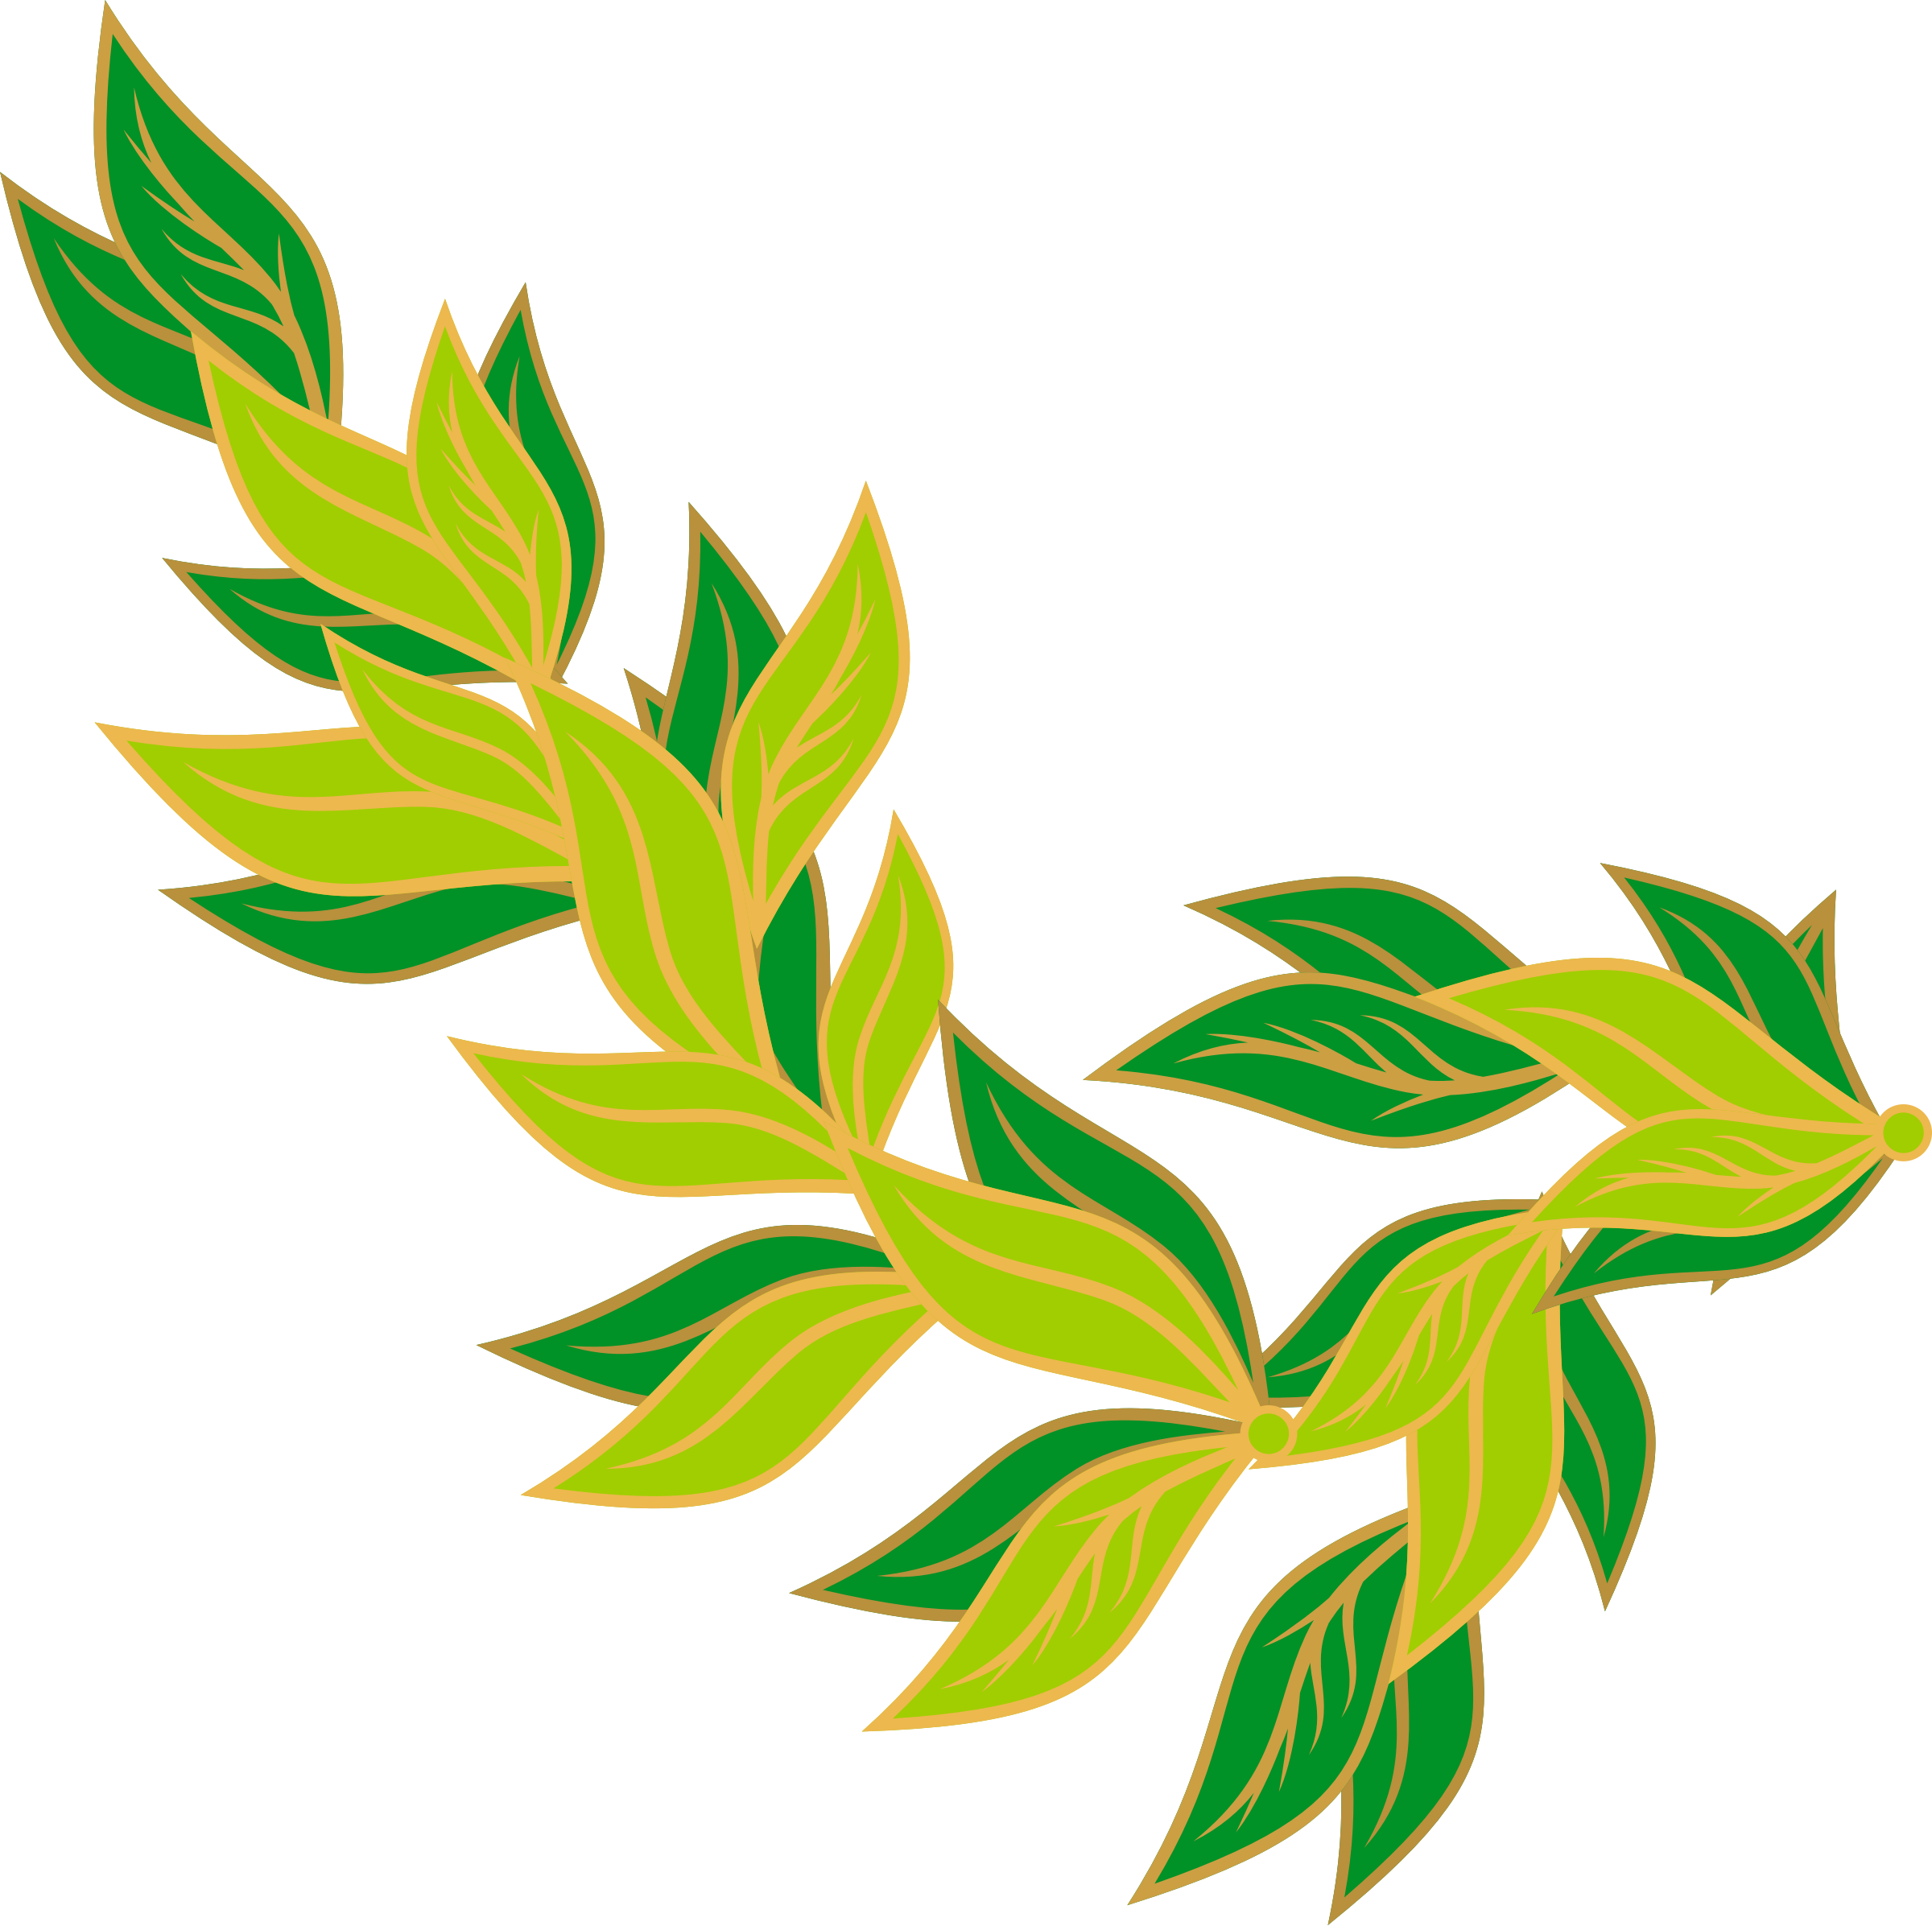 Bay leaf big image. Jungle clipart borders